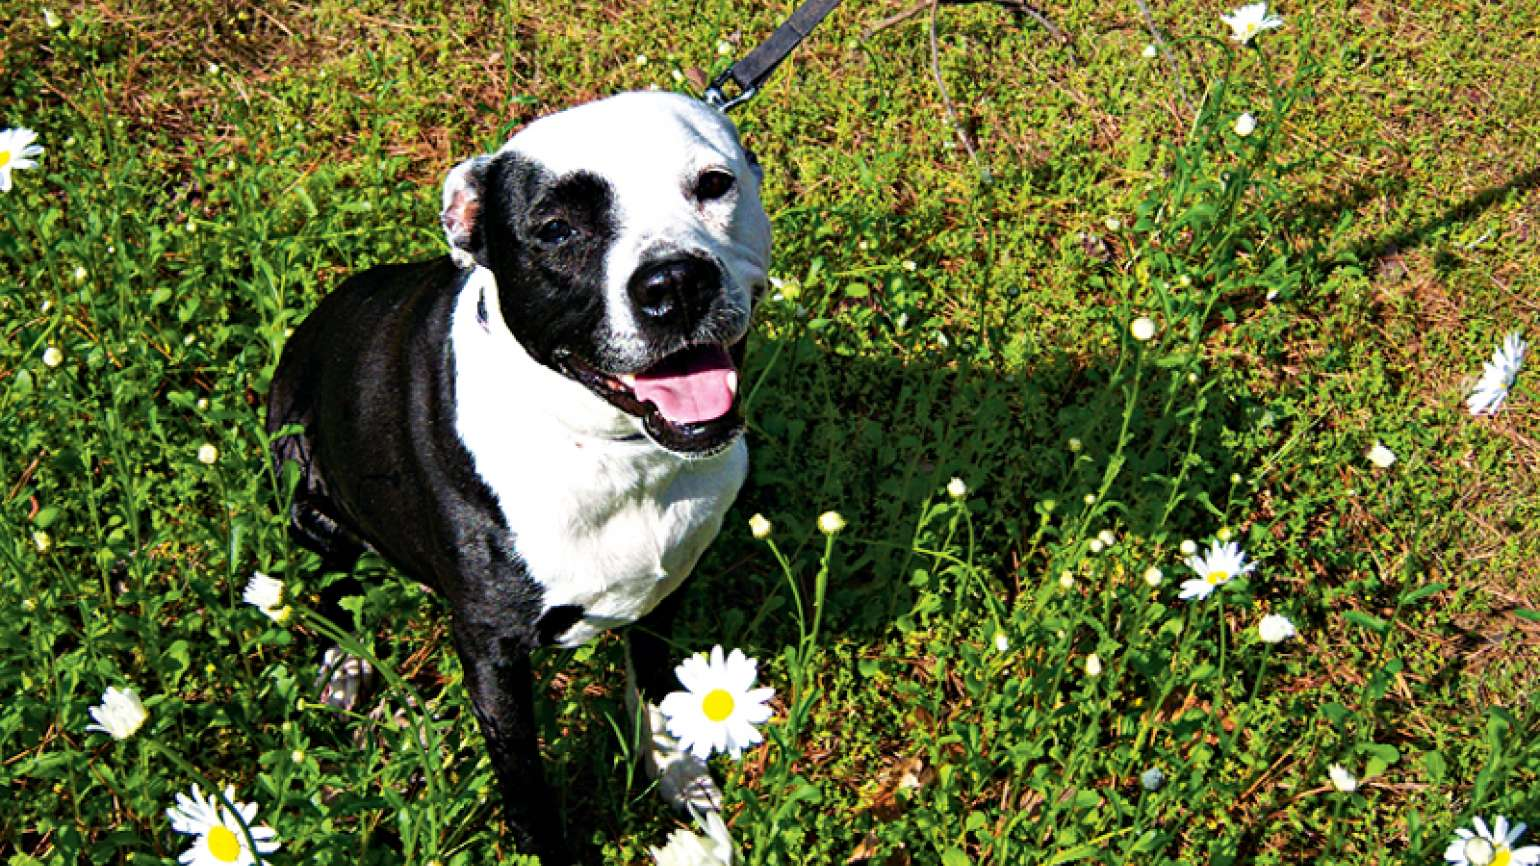 A photo of Daisy the dog in a field of wild flowers